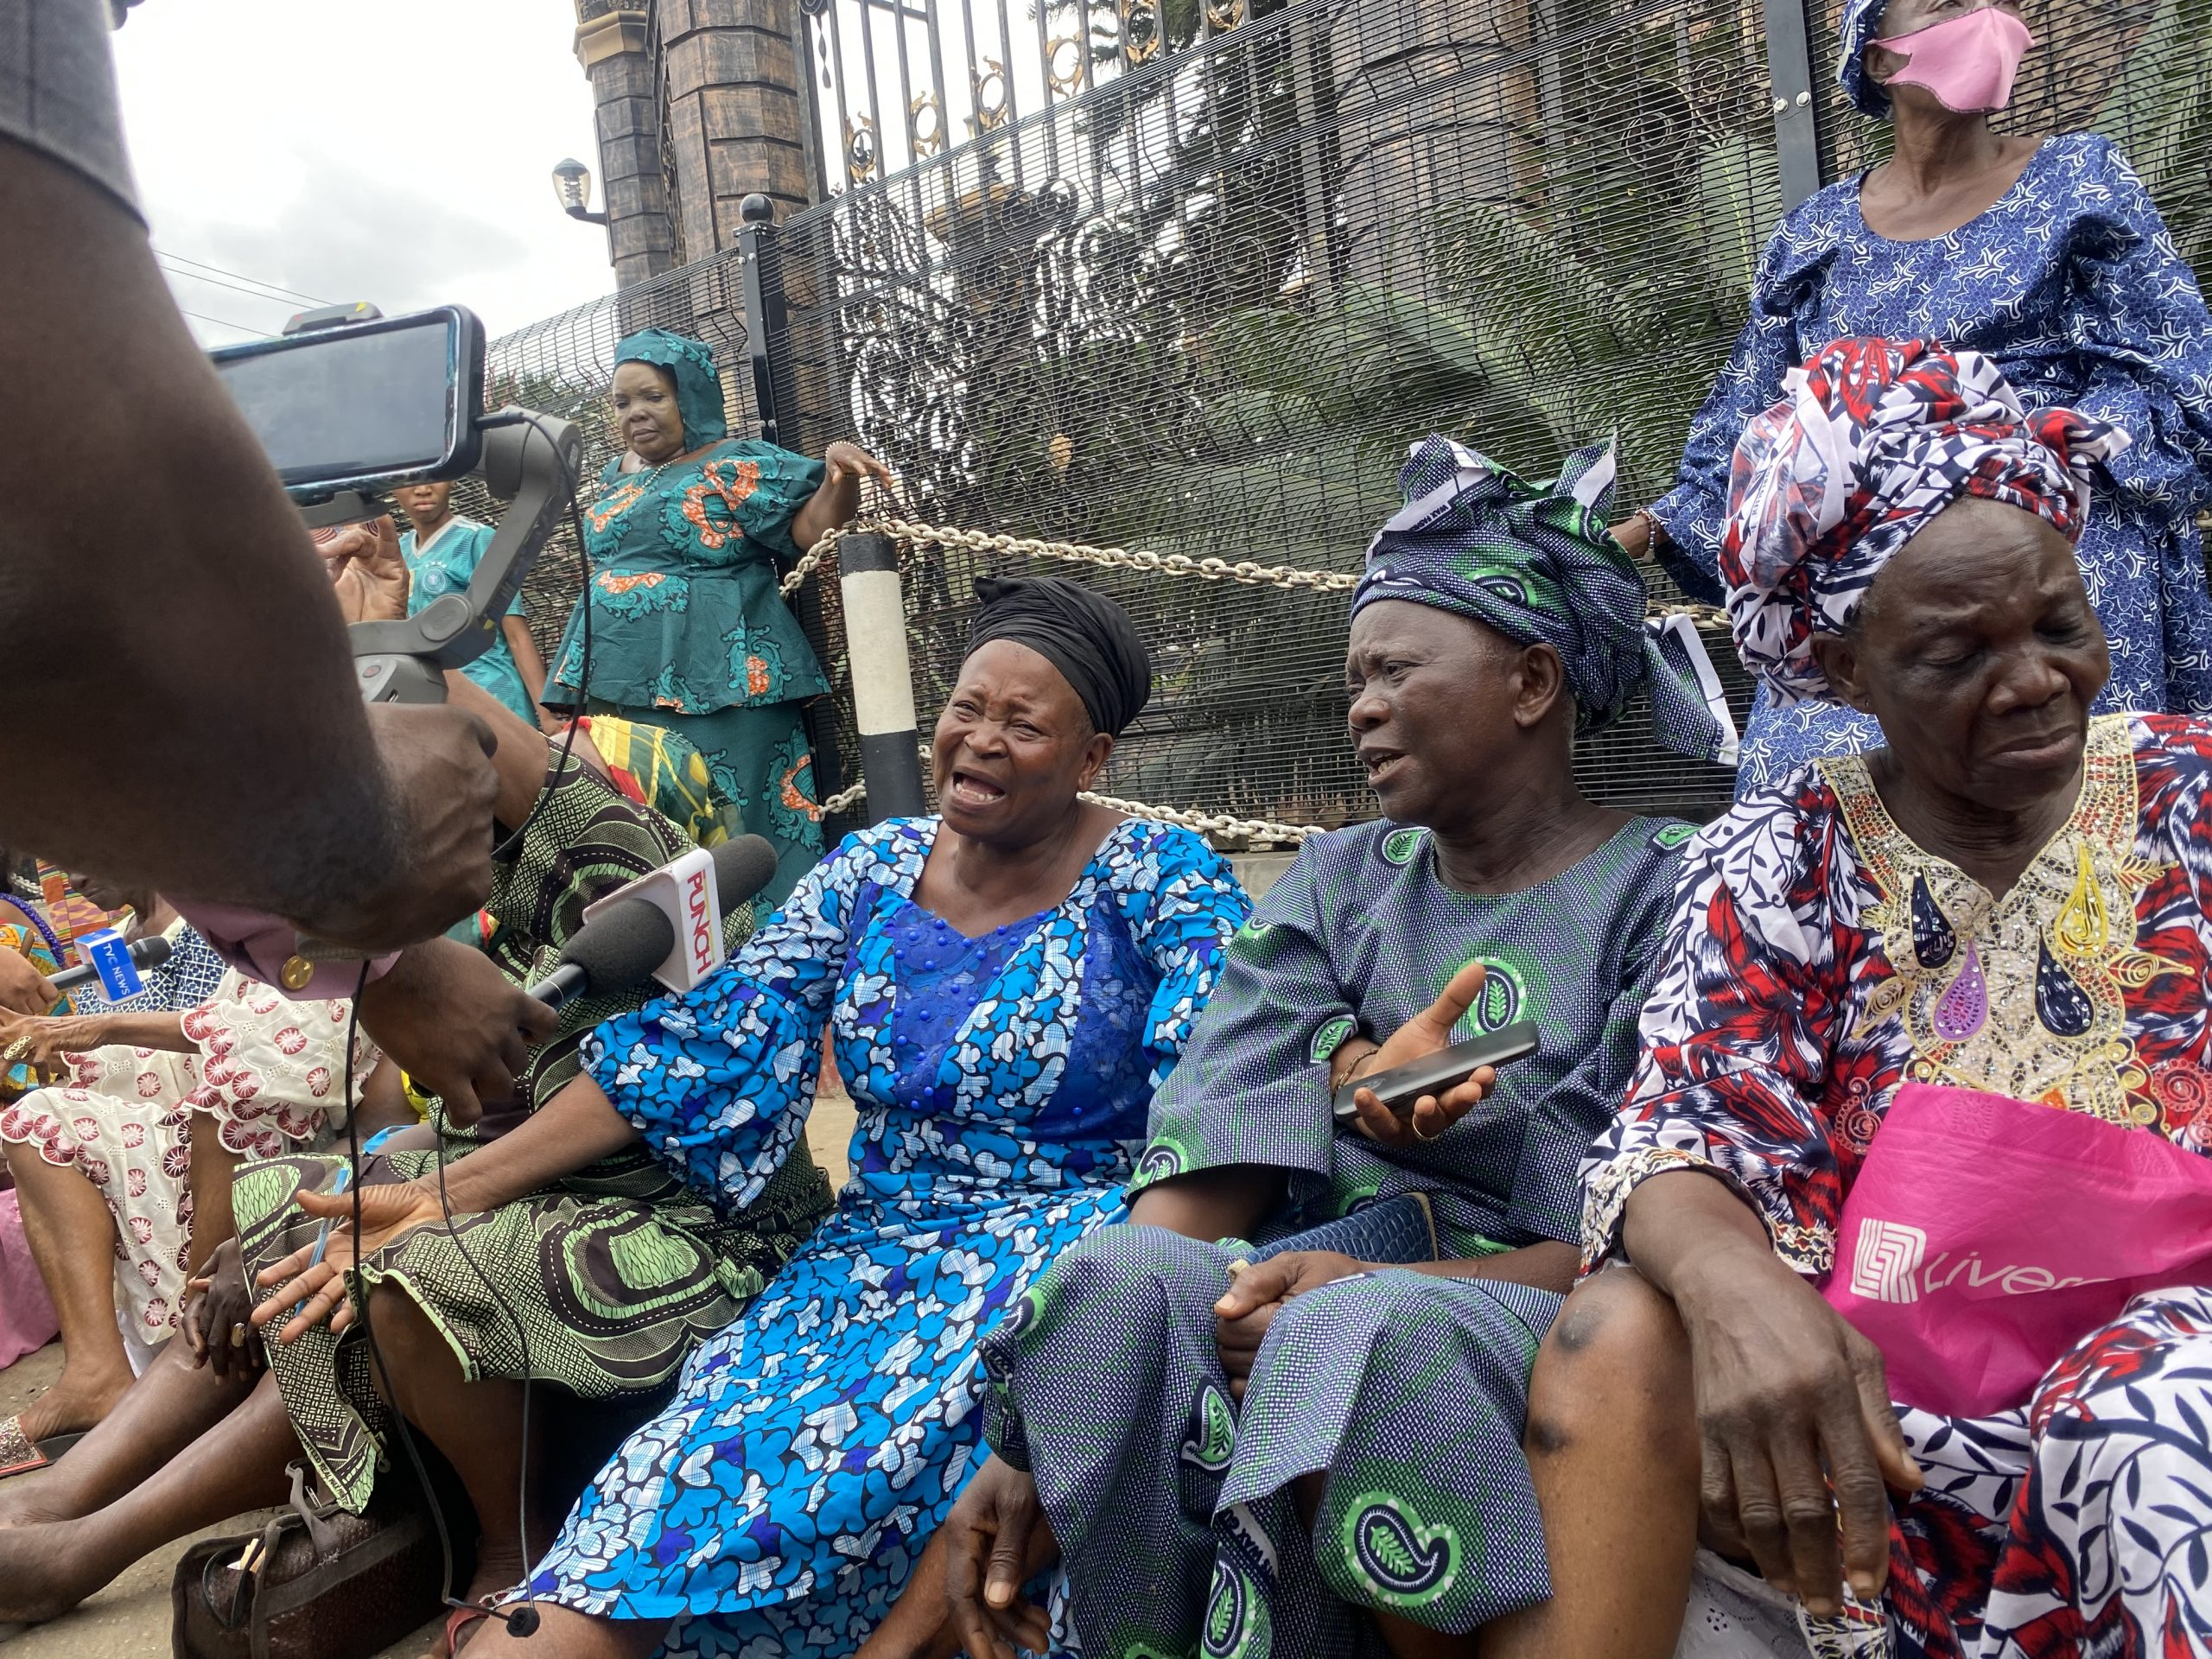 TB JOSHUA: OUR HELPER IS GONE, SYNAGOGUE MEMBERS, RESIDENTS MOURN. PHOTOS